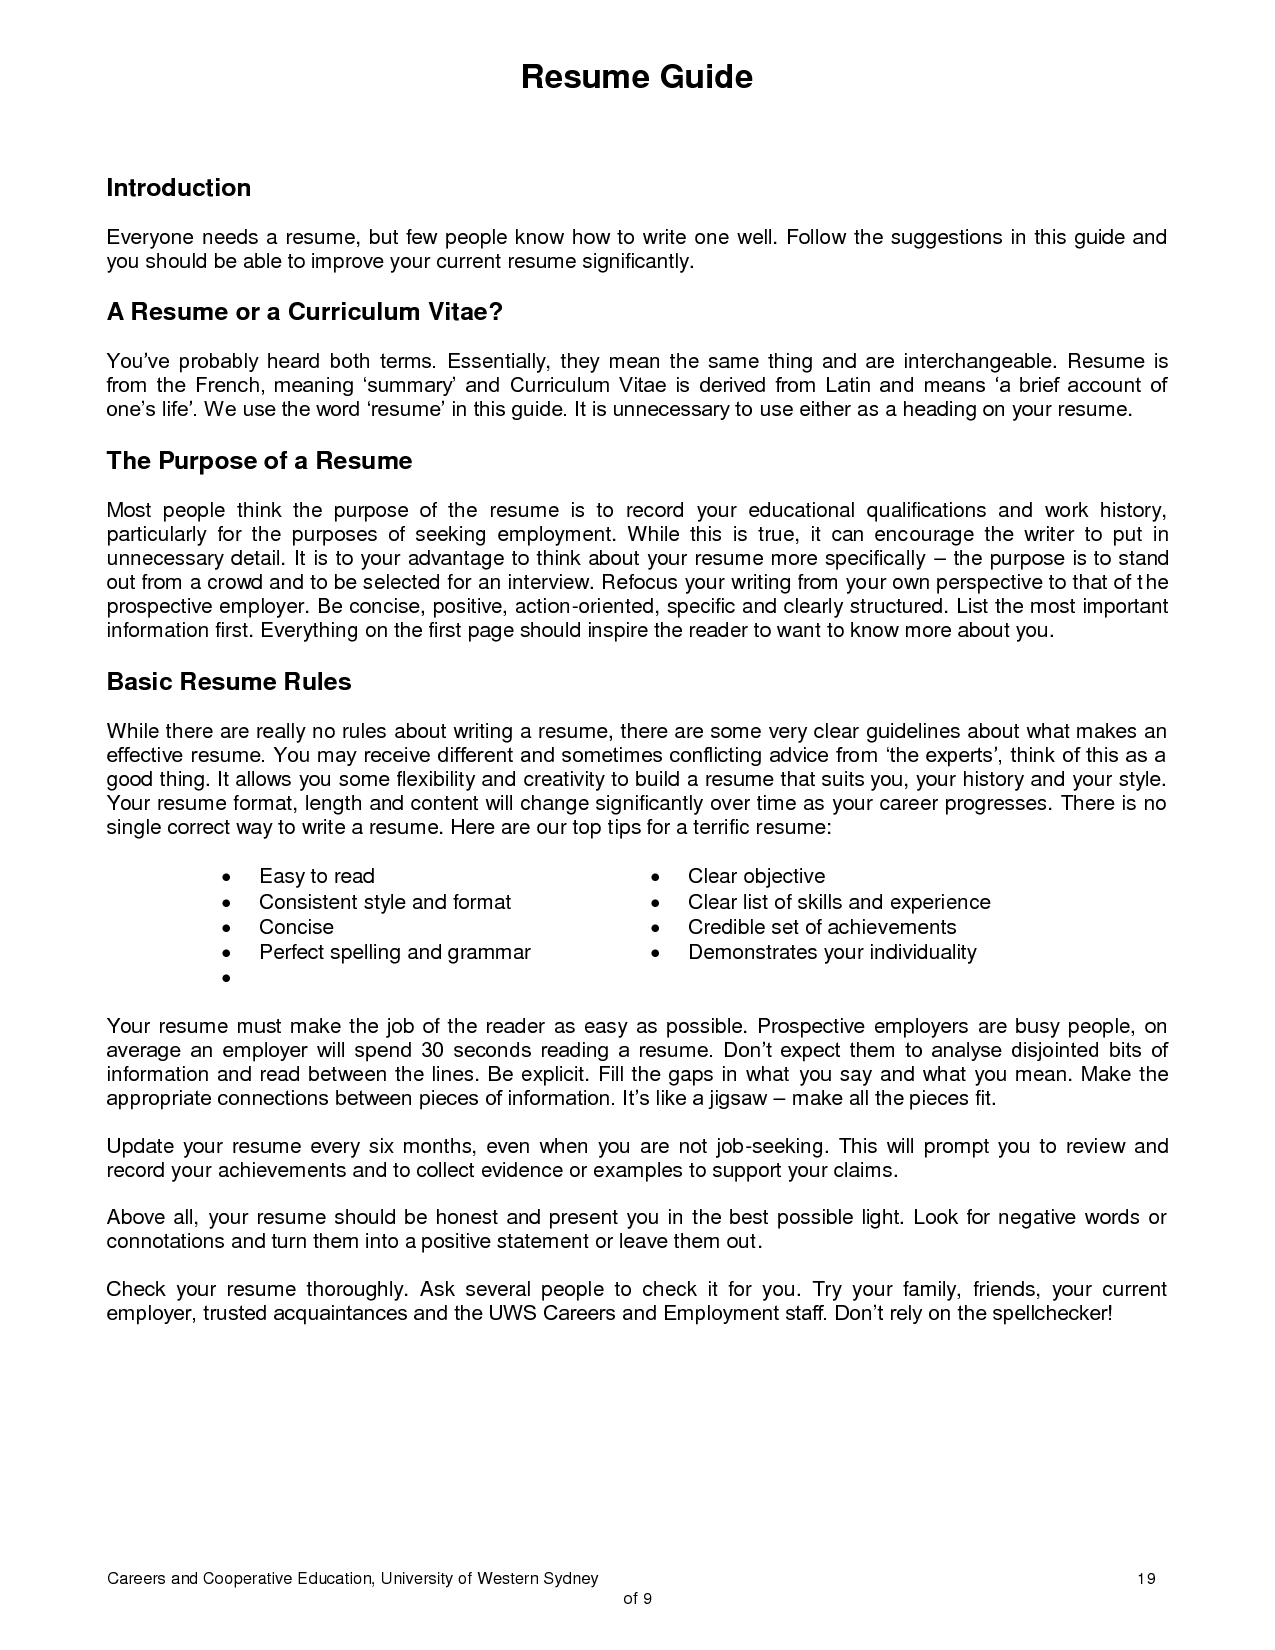 Typical Resume Format Sample Resume Australian Format Best Australia Resumes Templates